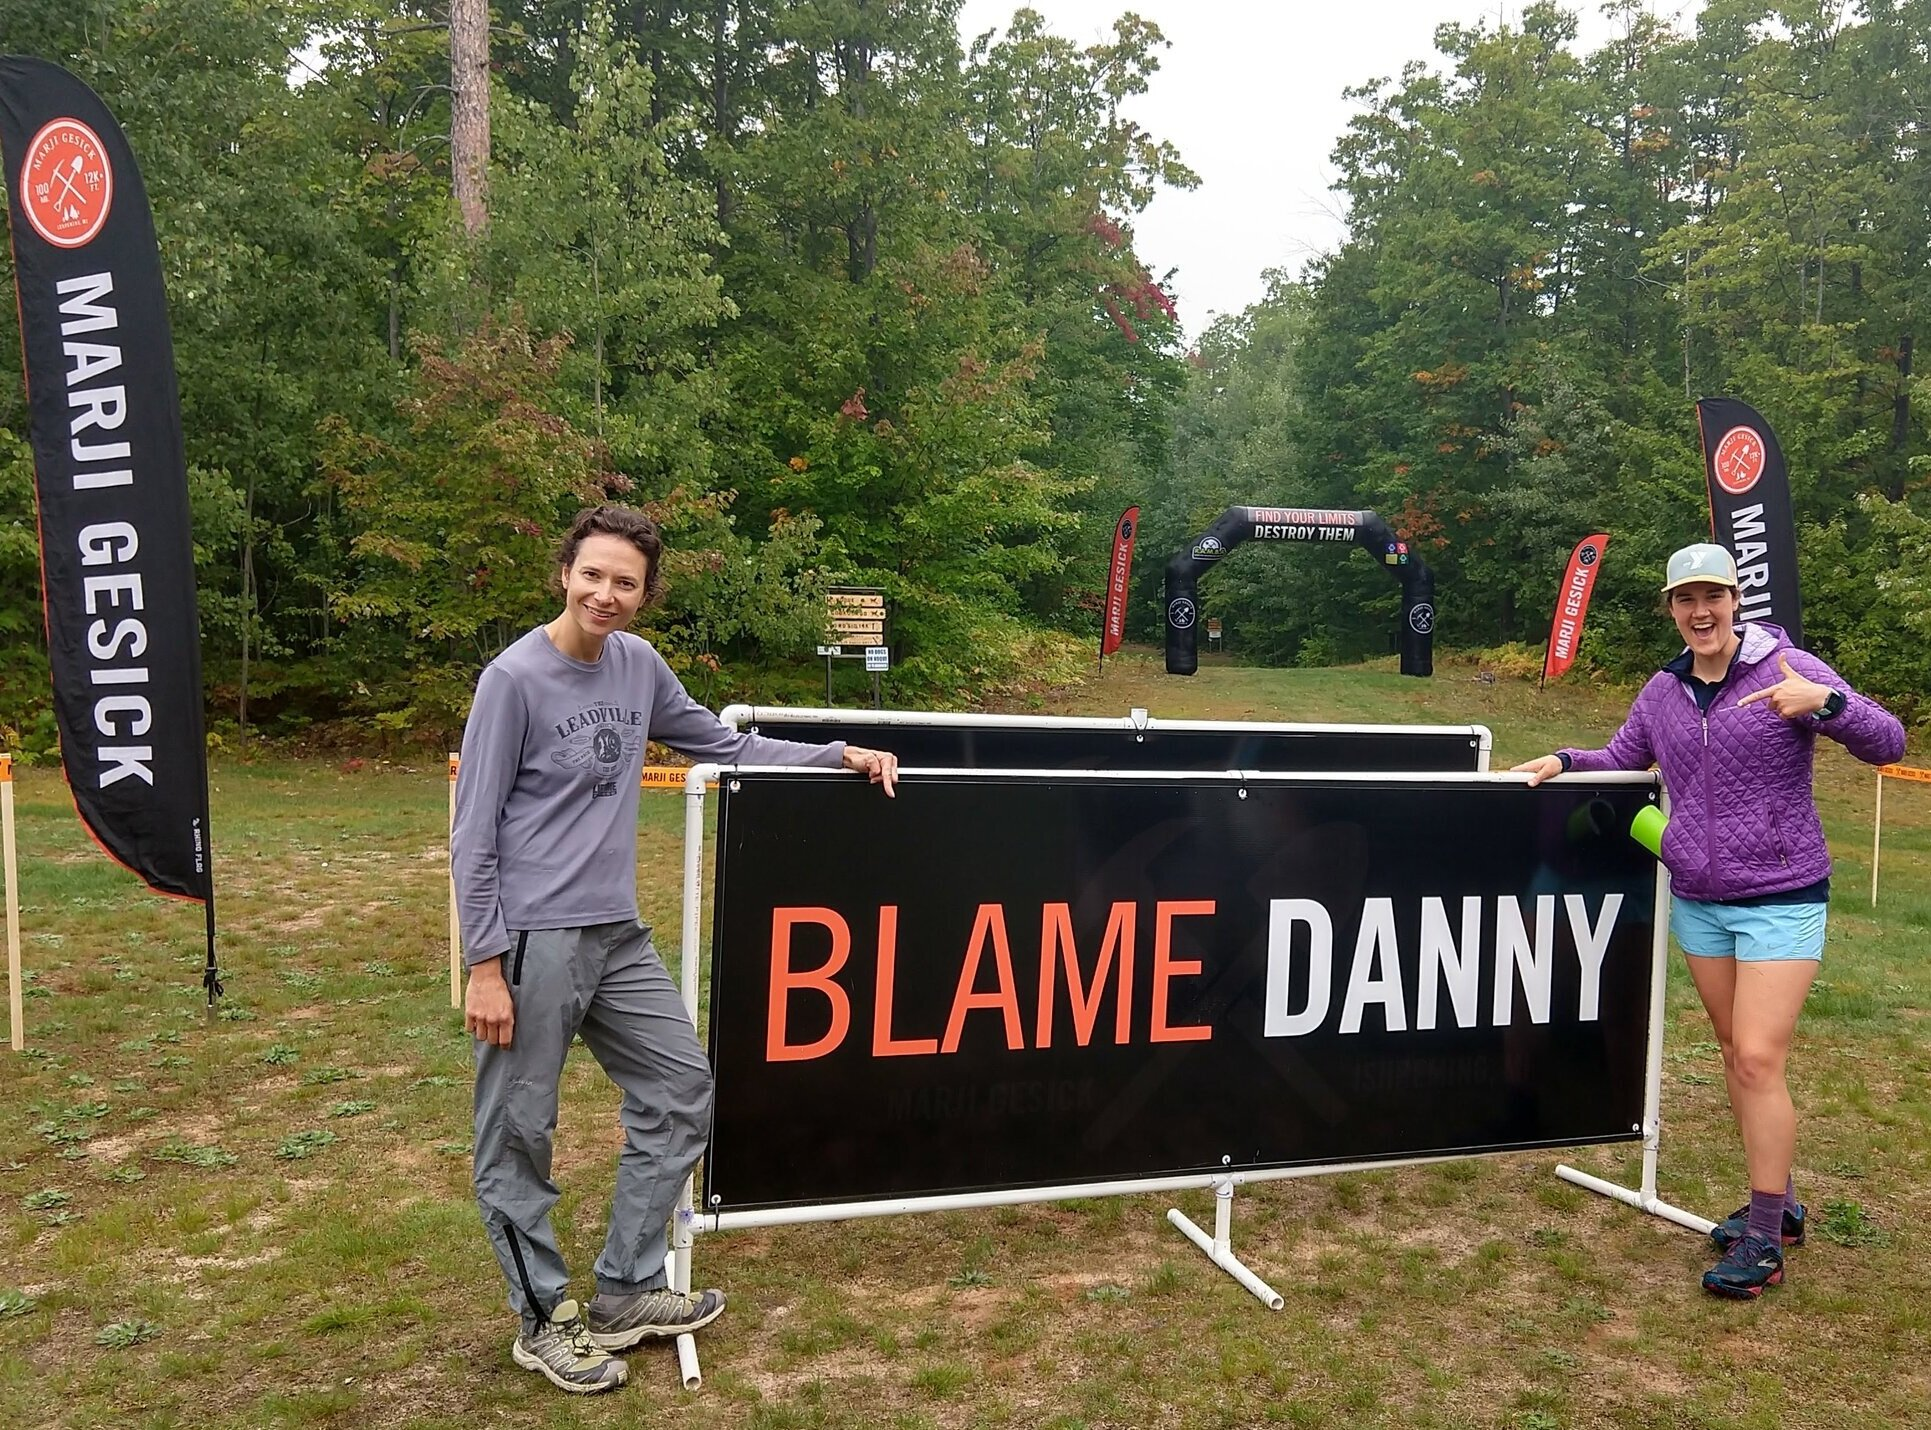 Course designer Danny Hill purposefully challenges racers